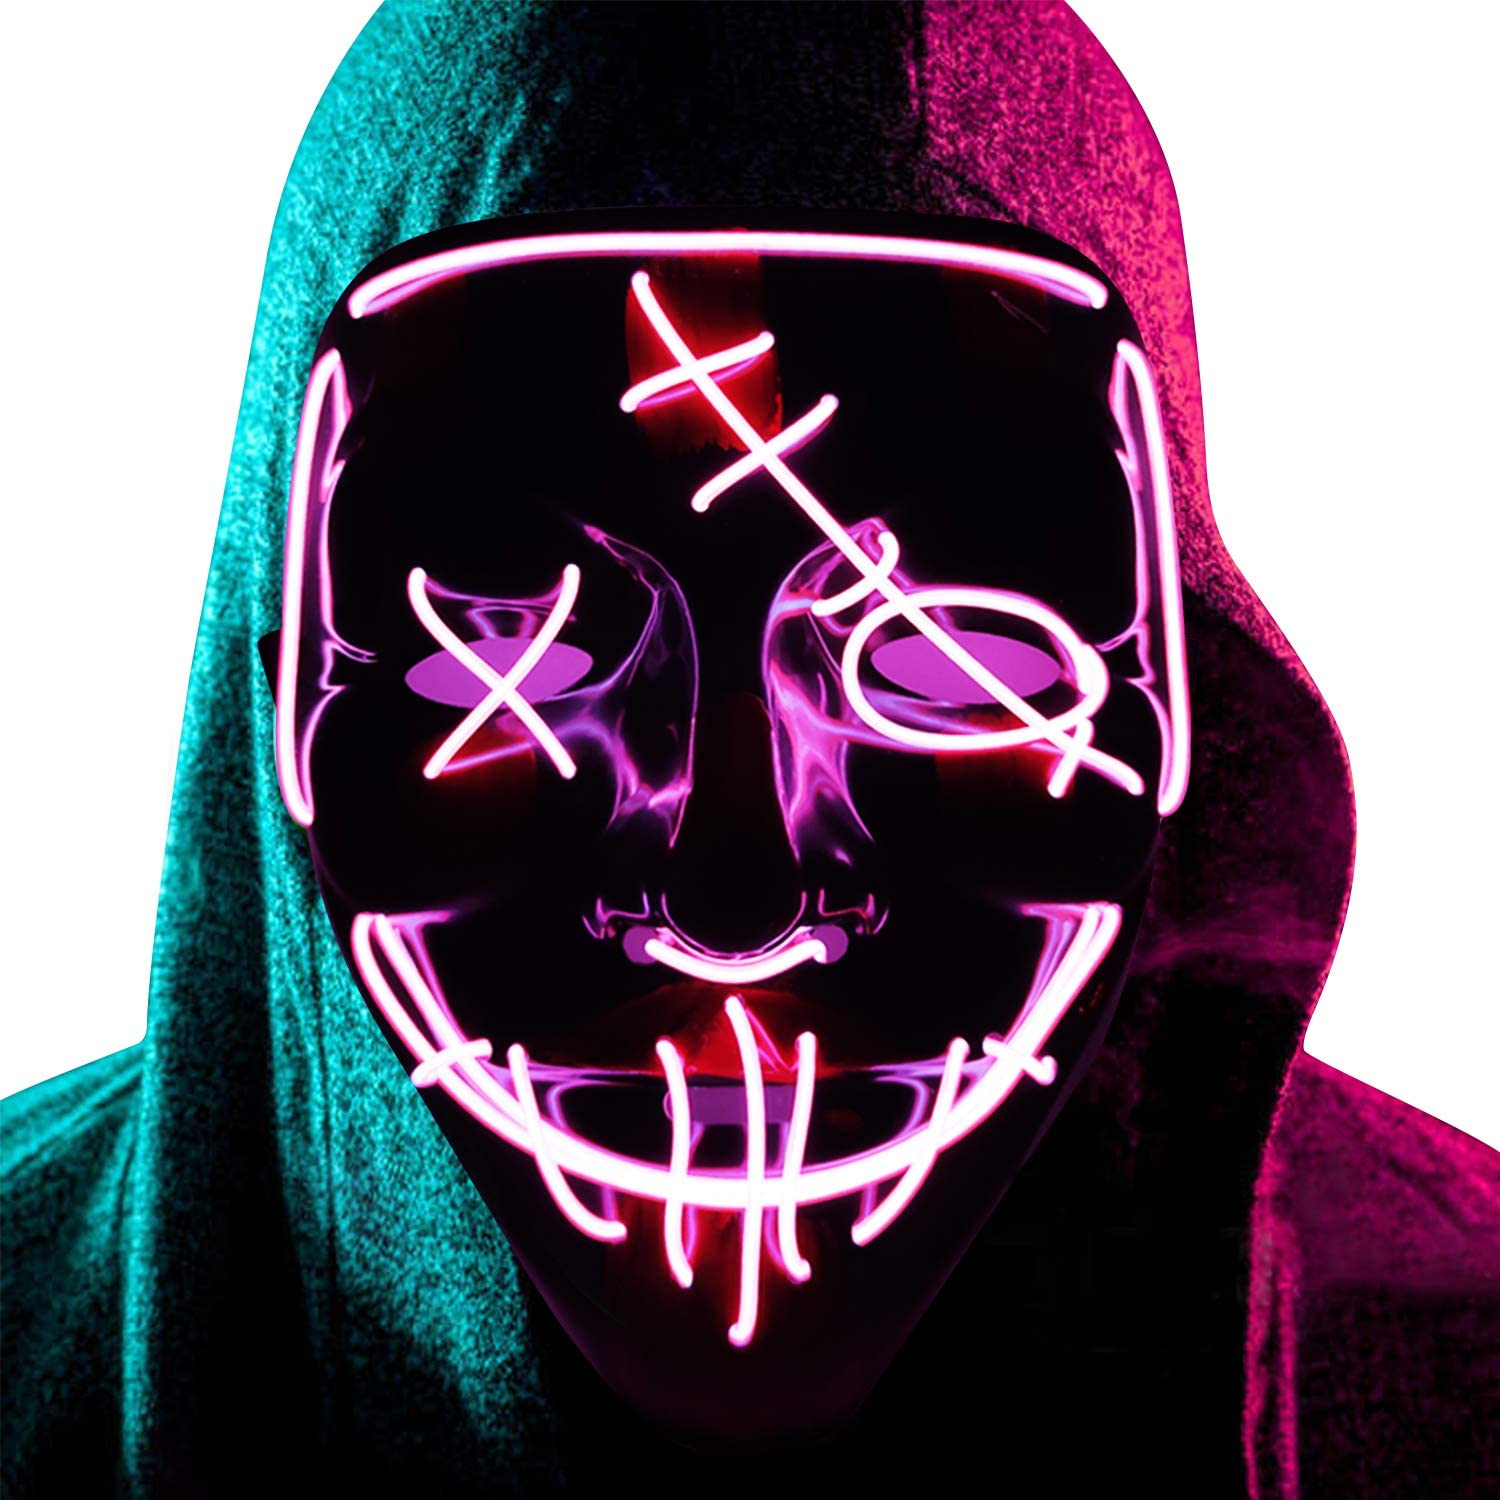 Halloween LED Mask Light Up Mask Glow in The Dark Cosplay EL Wire Halloween Festival Party Supplies